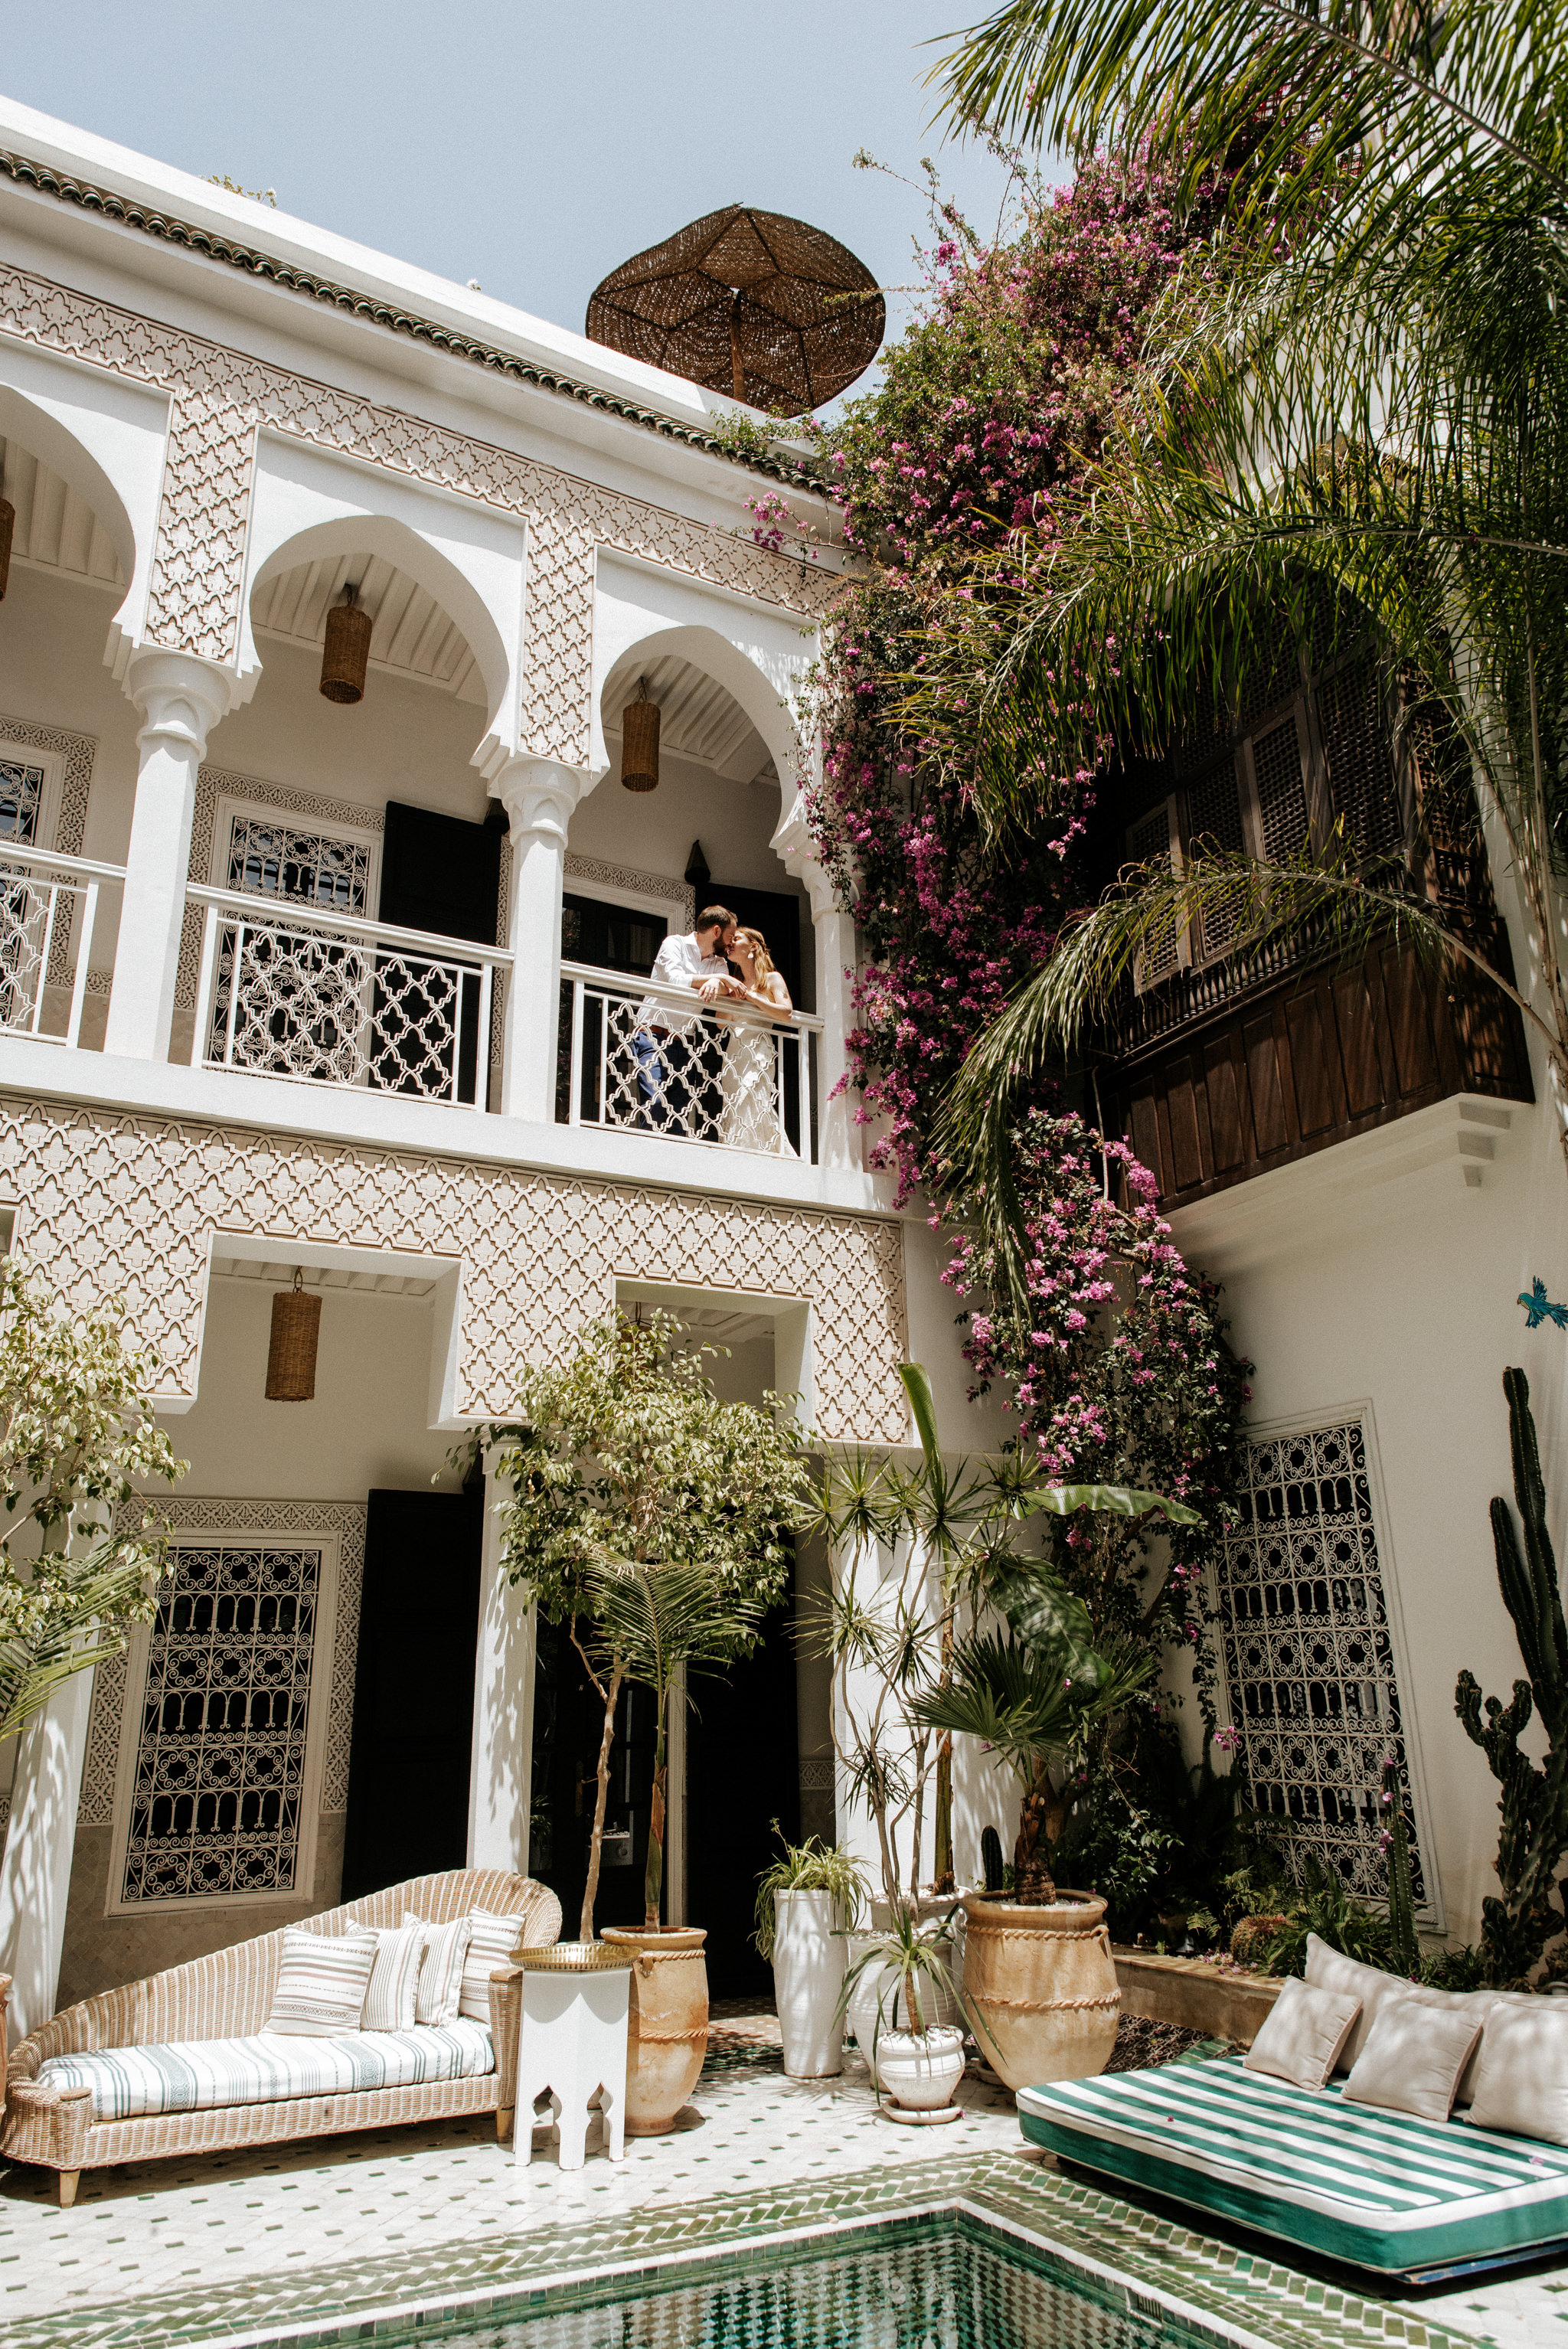 Dreamy wanderlust elopement at Le Riad Yasmine